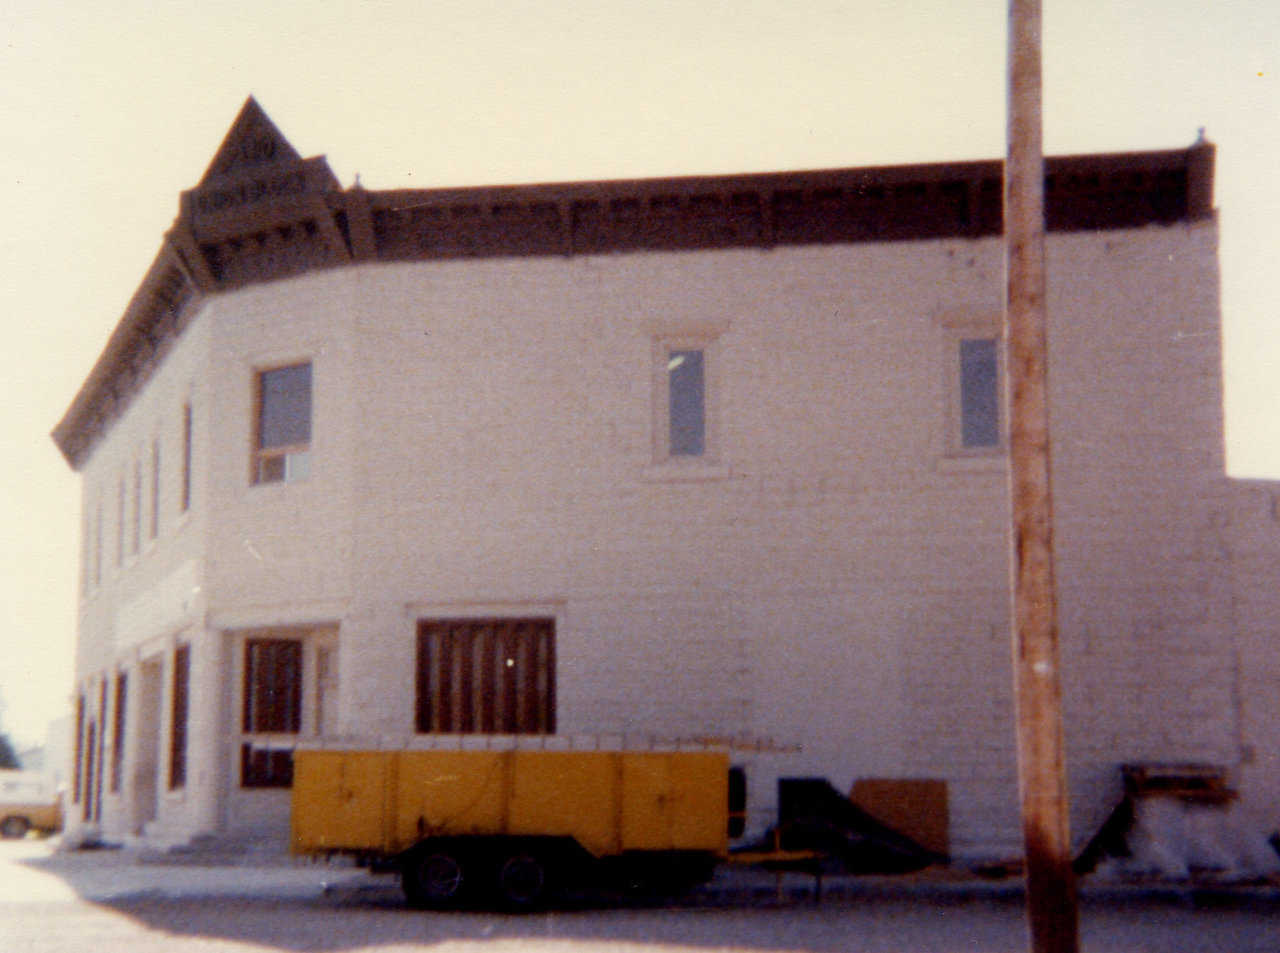 Polyurethane foam trailer in front of South's, Inc. in Shelley, Idaho. (Circa 1976)